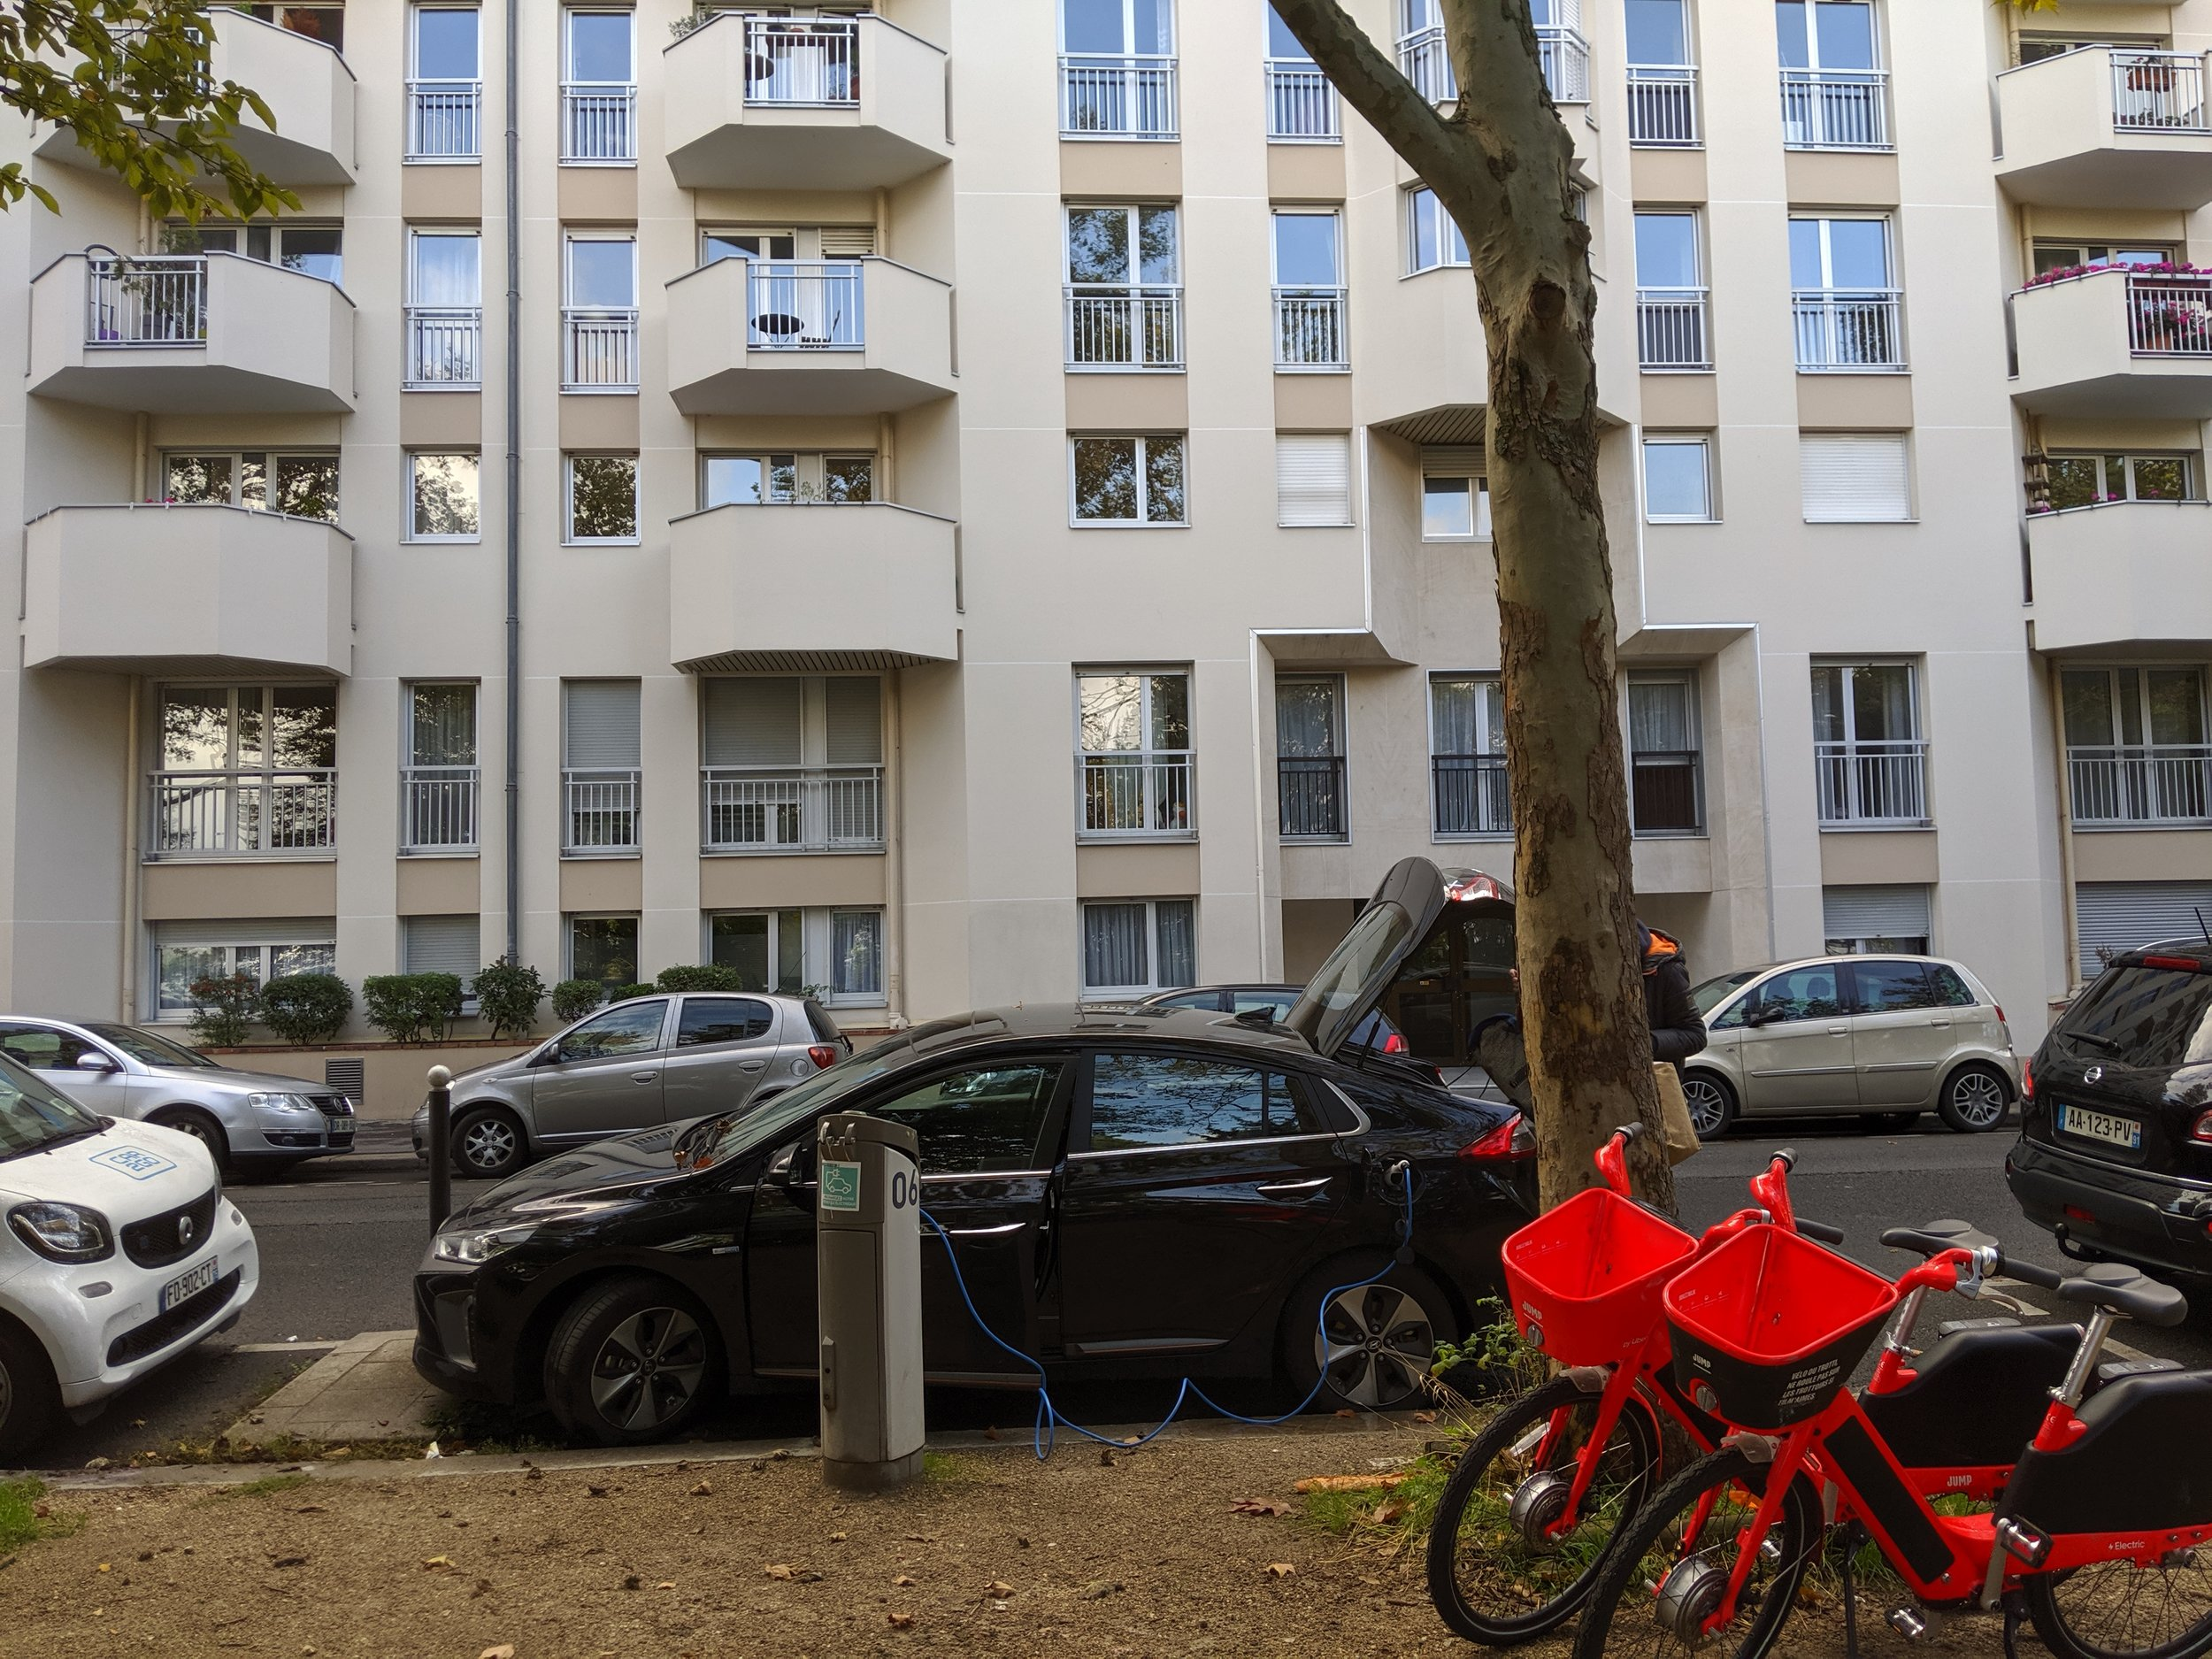 You probably noticed the Jump by Uber bikes on the right, and can you find the hidden baguette?